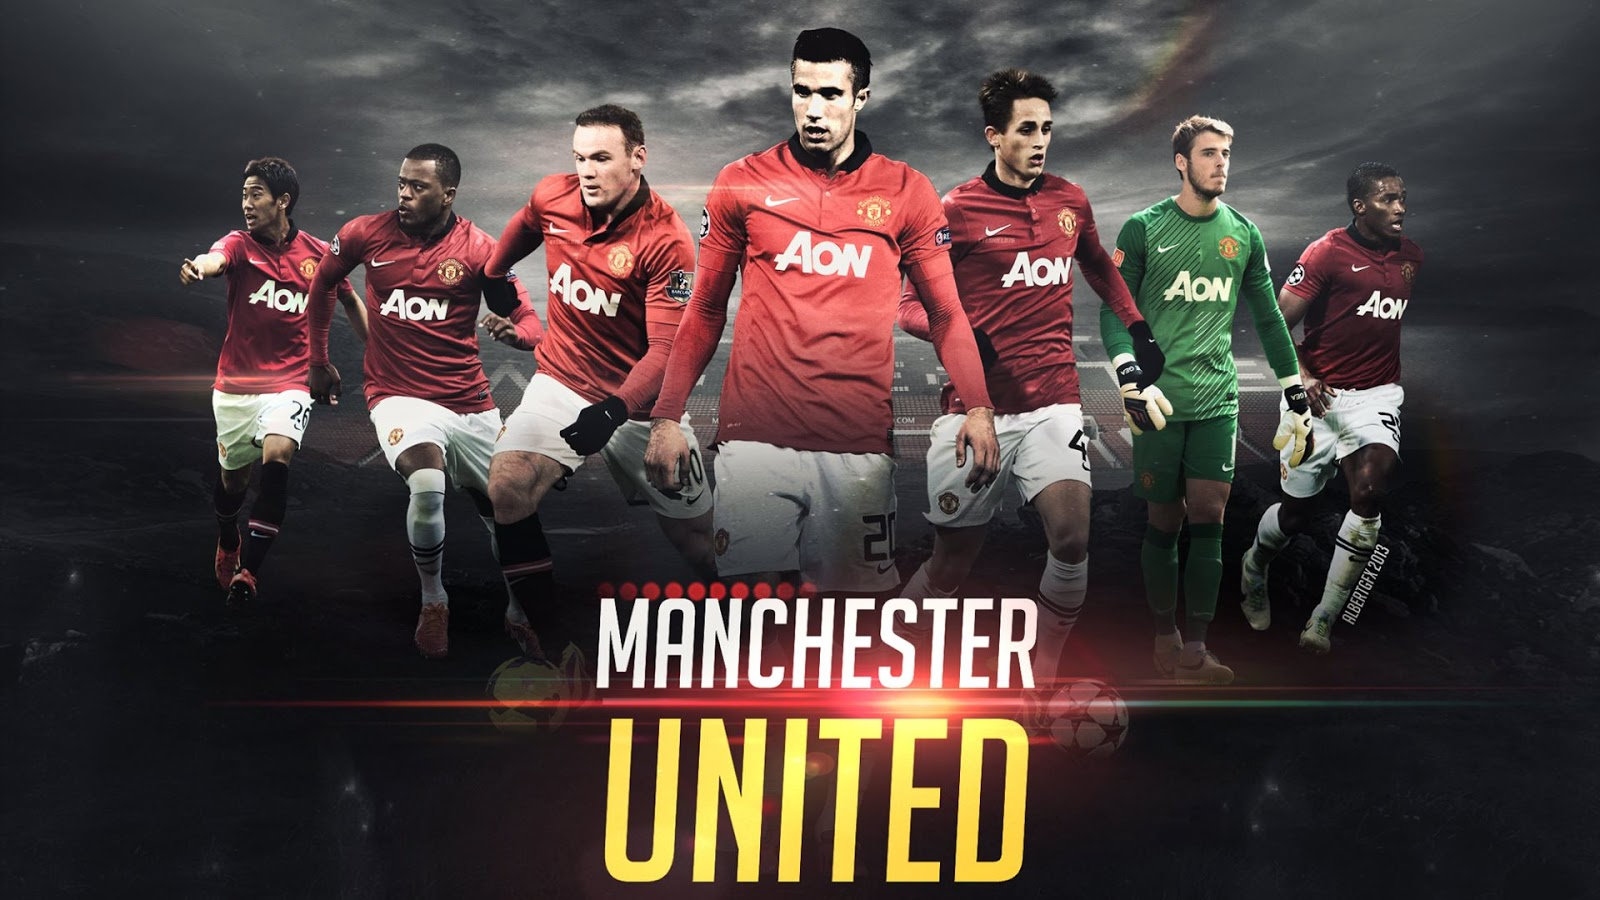 manchester united football club group latest hd wallpaper